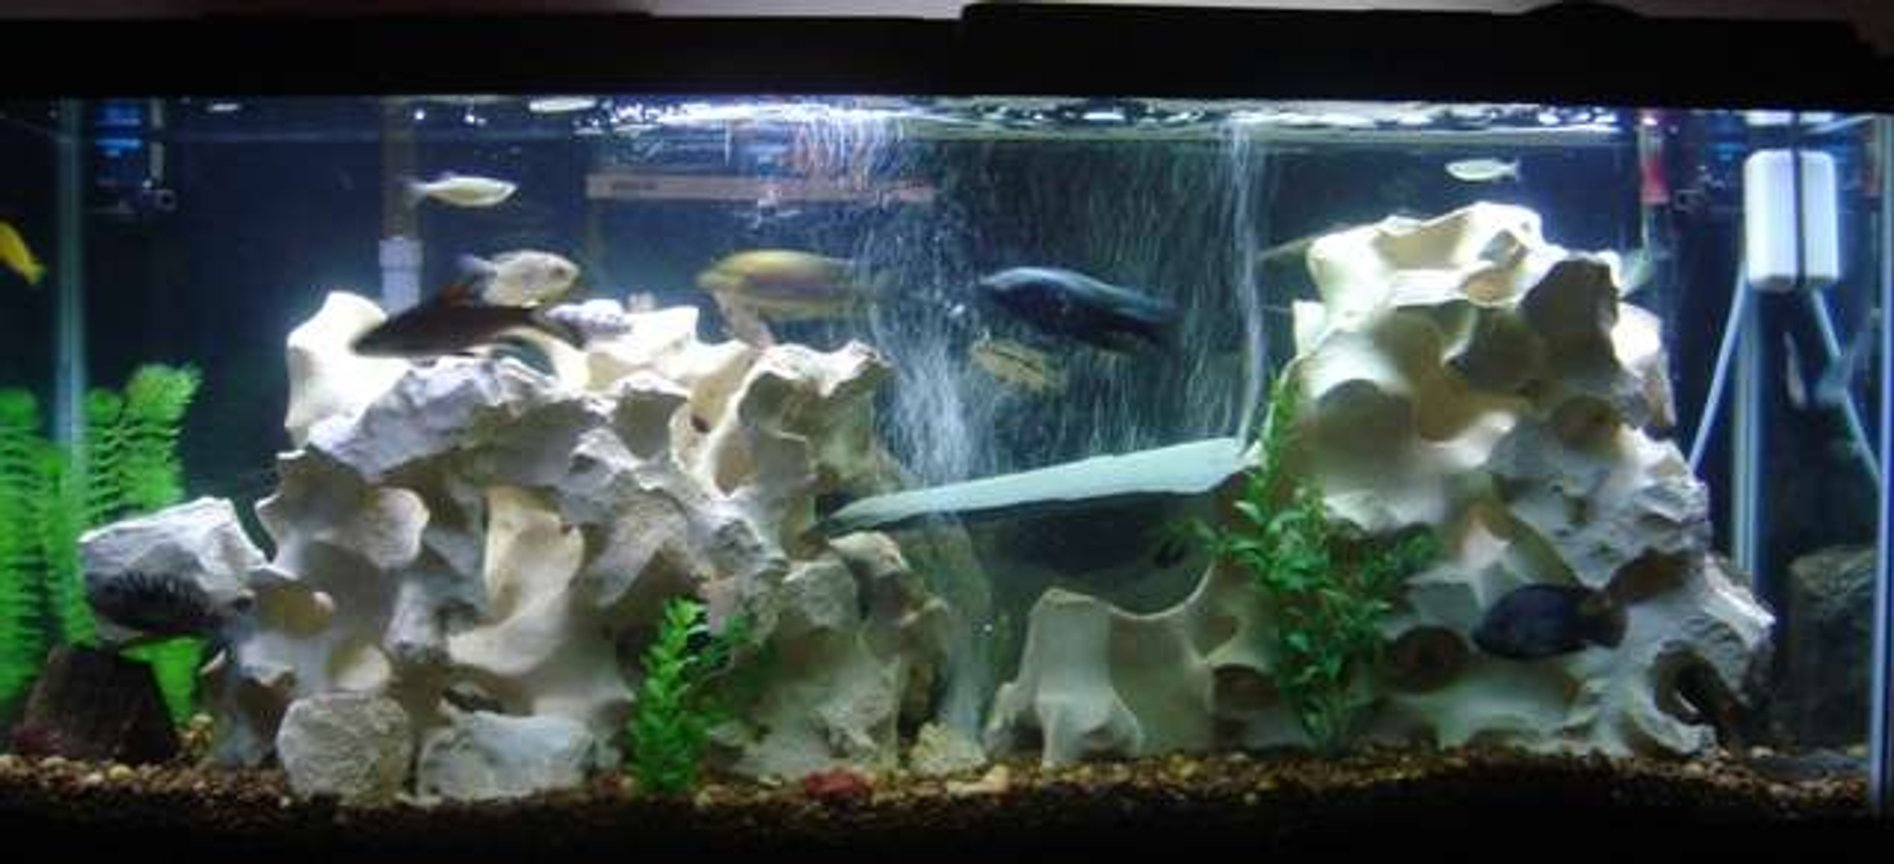 55 gallons freshwater fish tank (mostly fish and non-living decorations) - 55 Gallon Tank w/mostly chilids